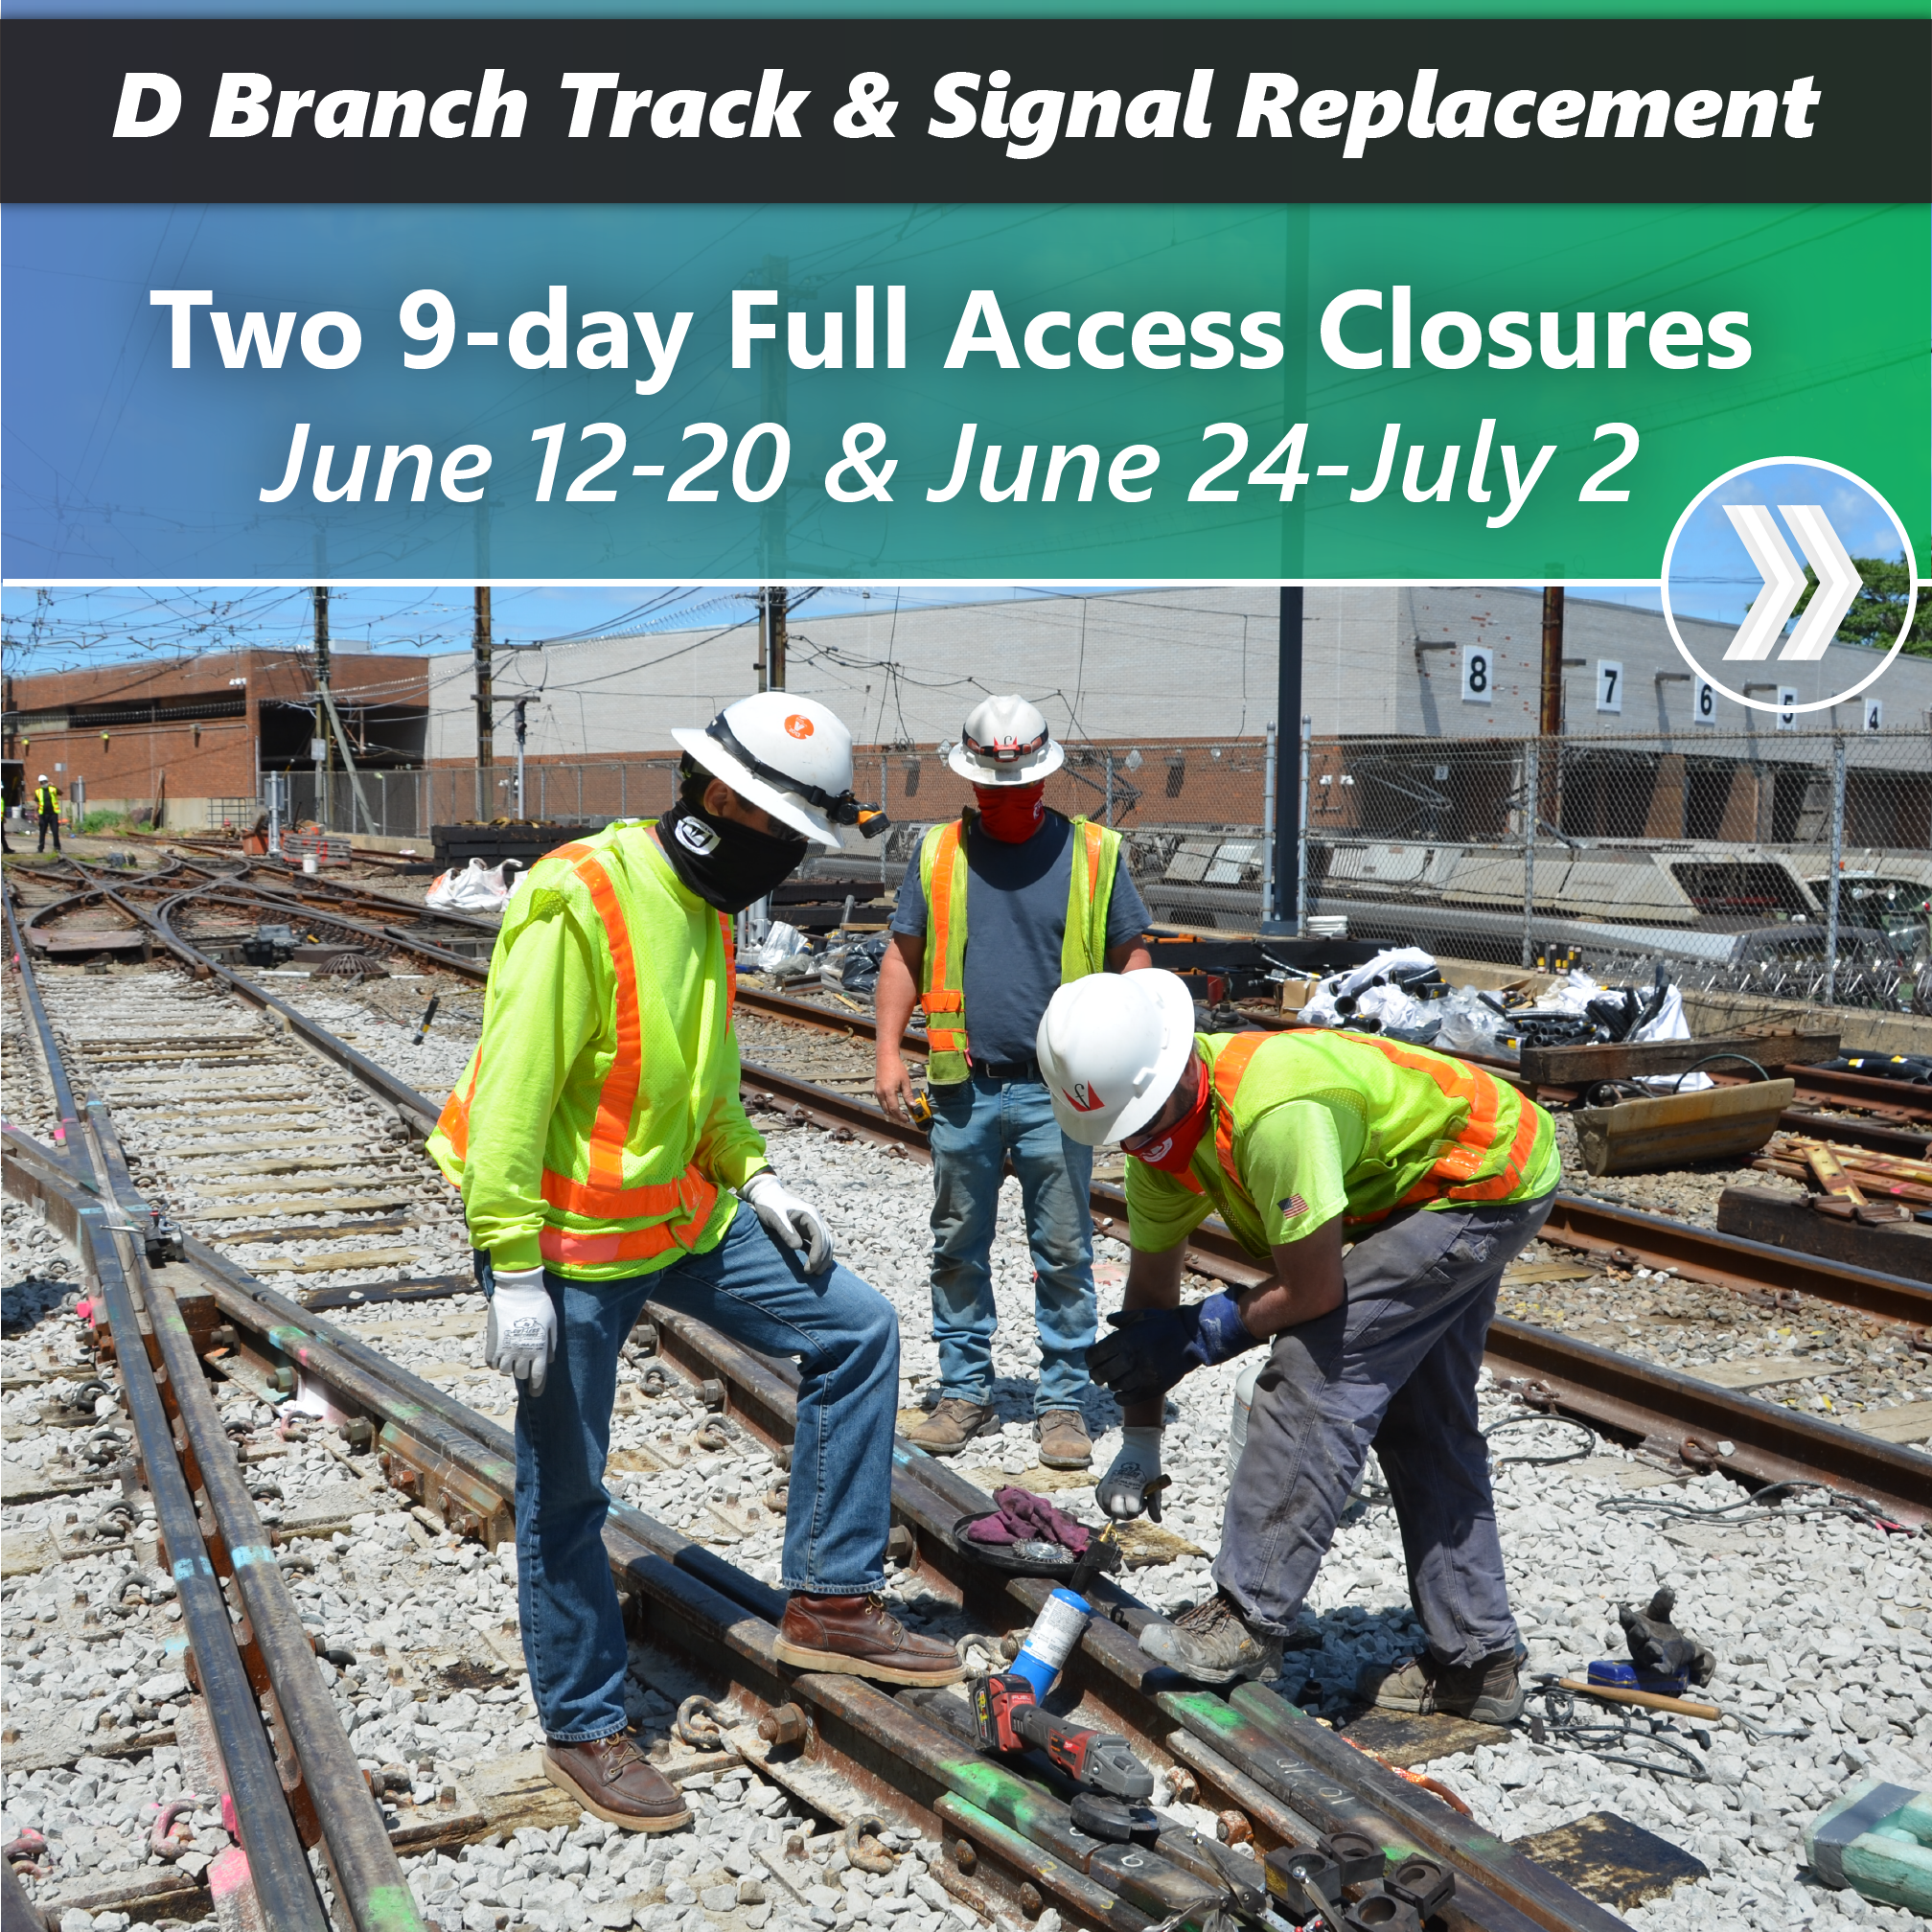 Two 9-day Full Access Closures will take place from June 12-20 and June 24-July 2